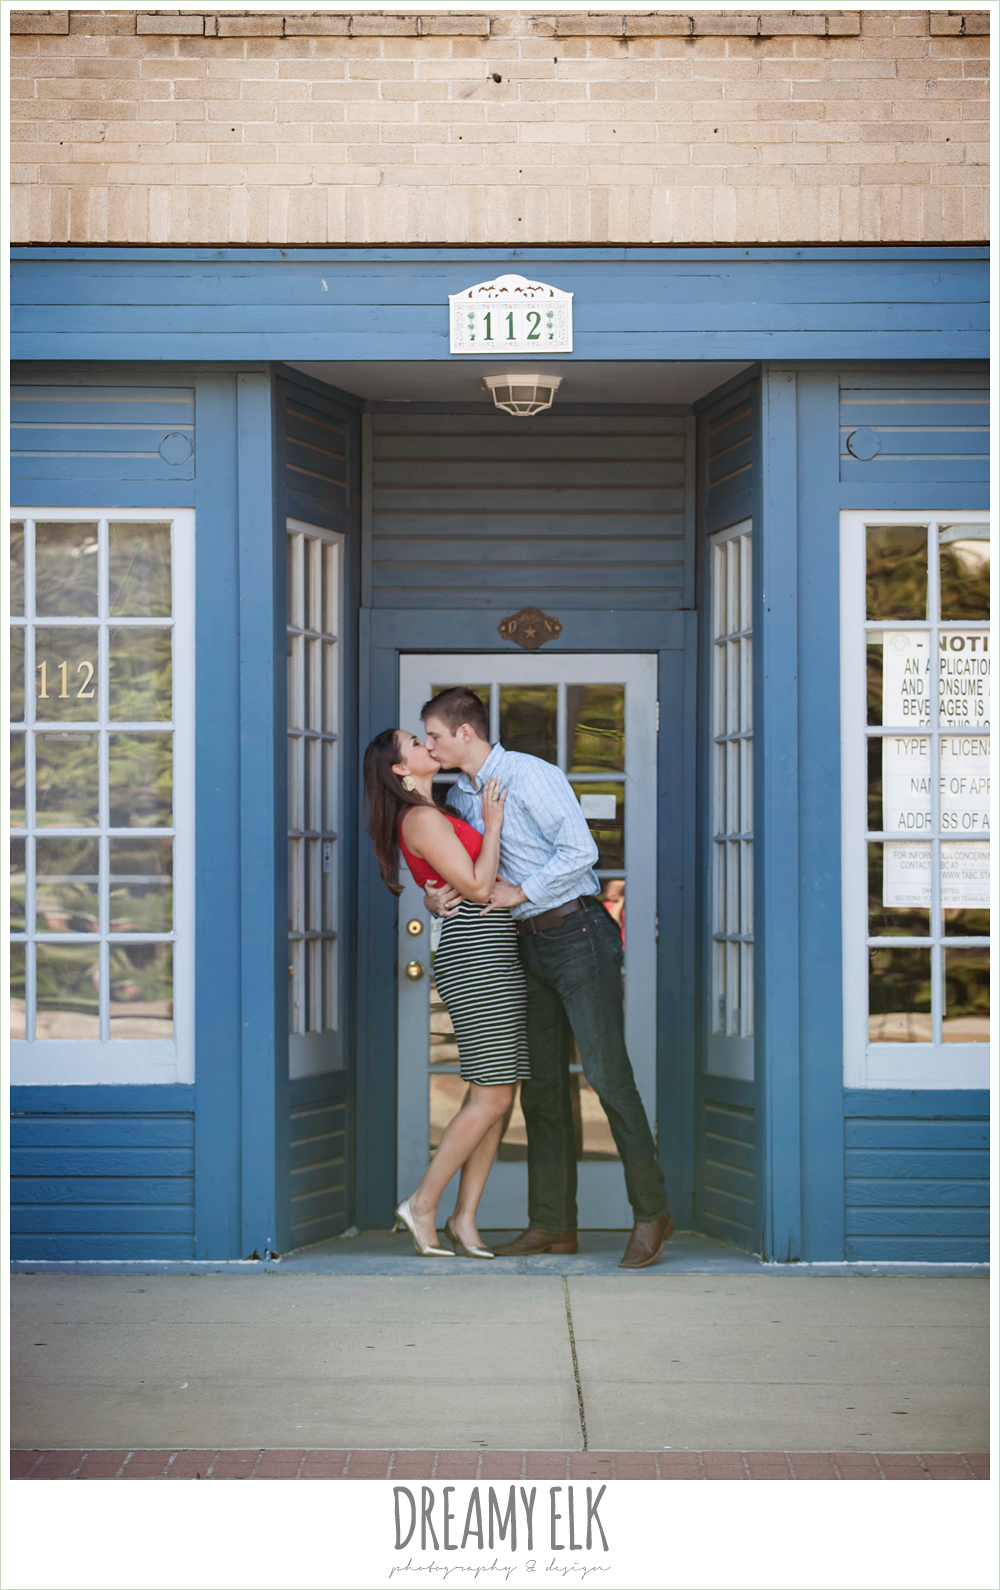 urban summer engagement photo, downtown bryan, texas {dreamy elk photography and design}